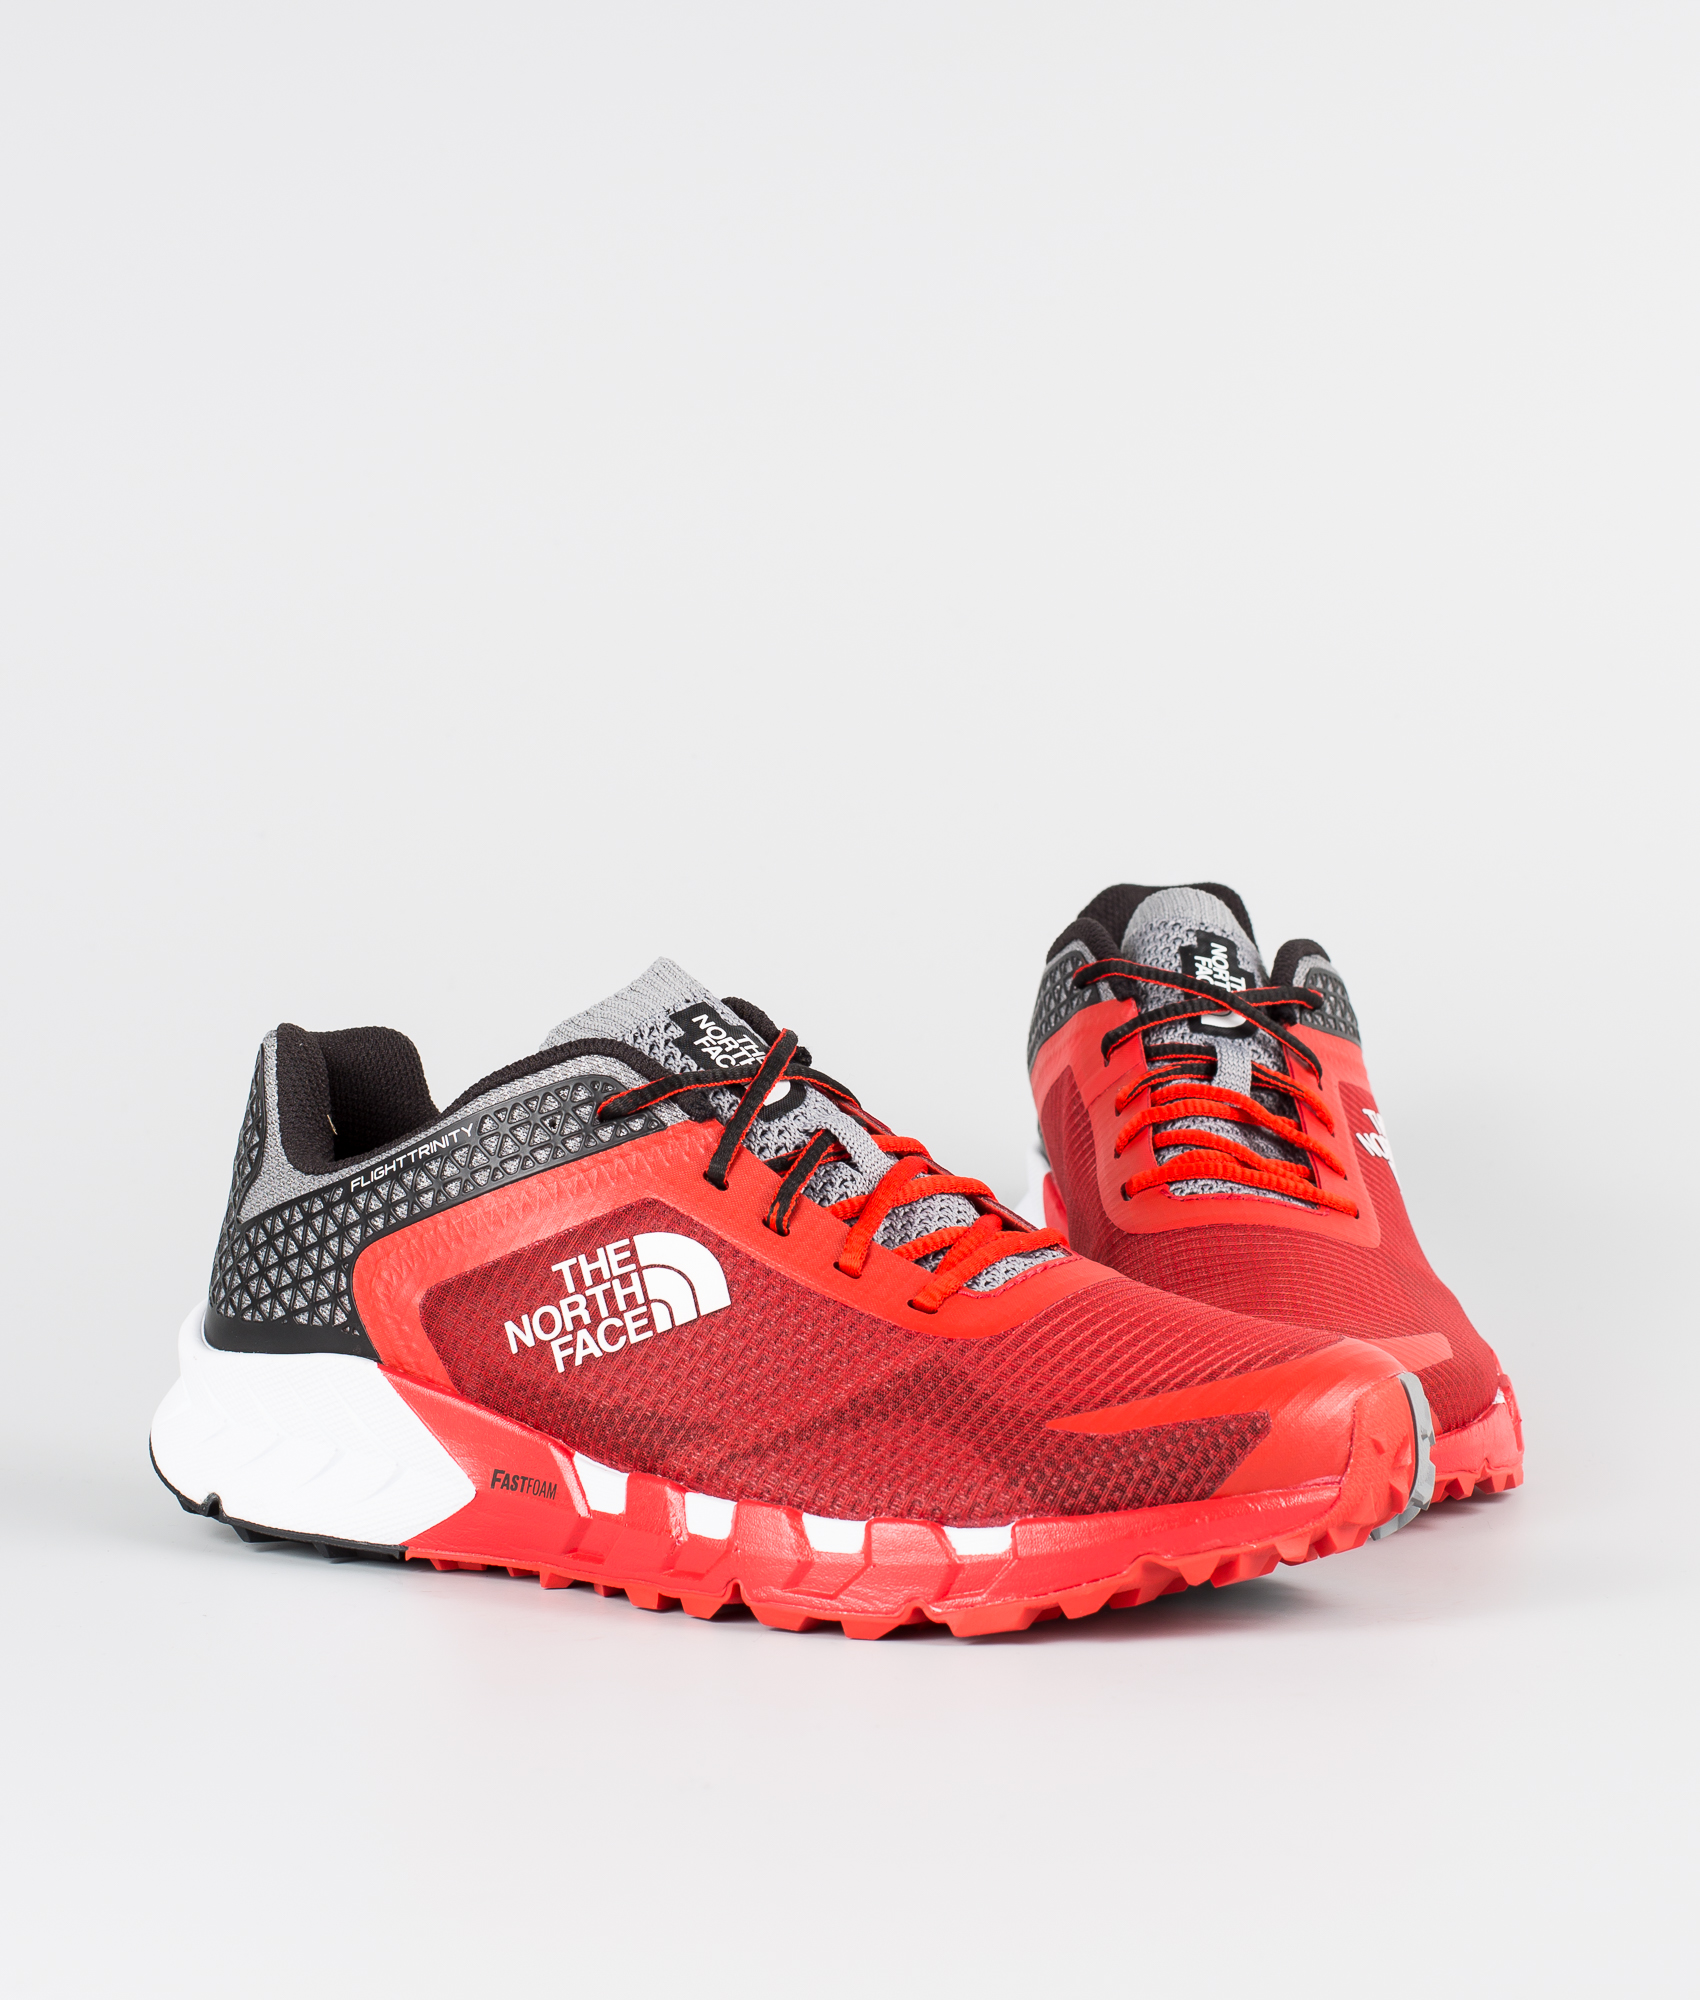 Flight Trinity Redtnf The Face Outdoor North Black Shoes Fiery eH2EYDW9I